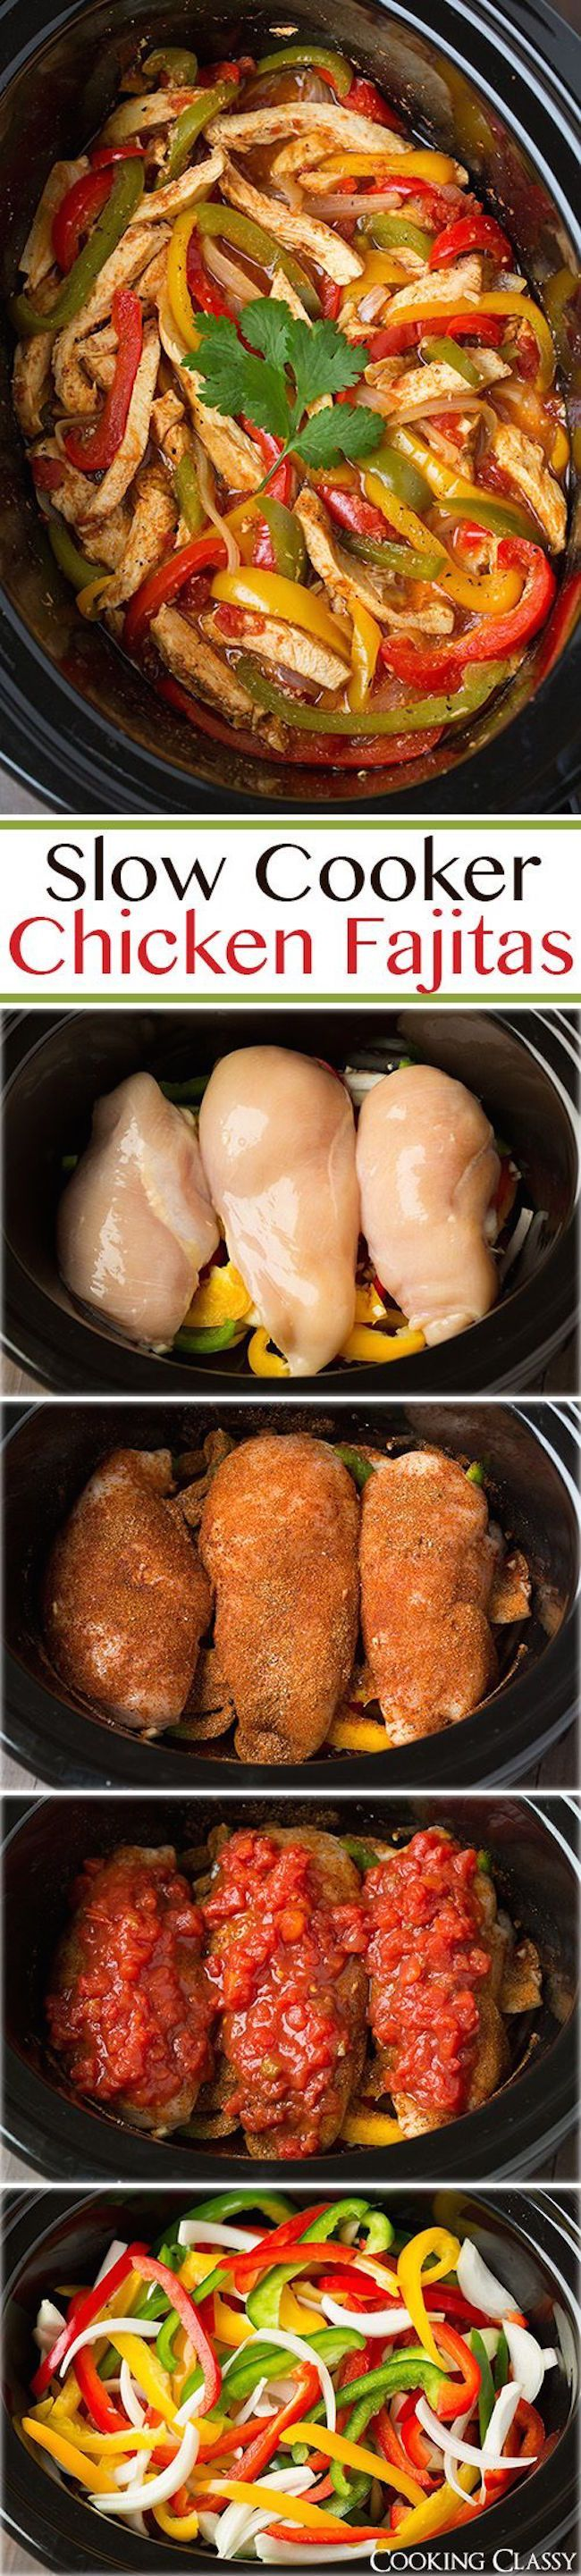 There are tons of great recipes out there, but we found the most popular on Pinterest - check out the 11 Best Crockpot Recipes!